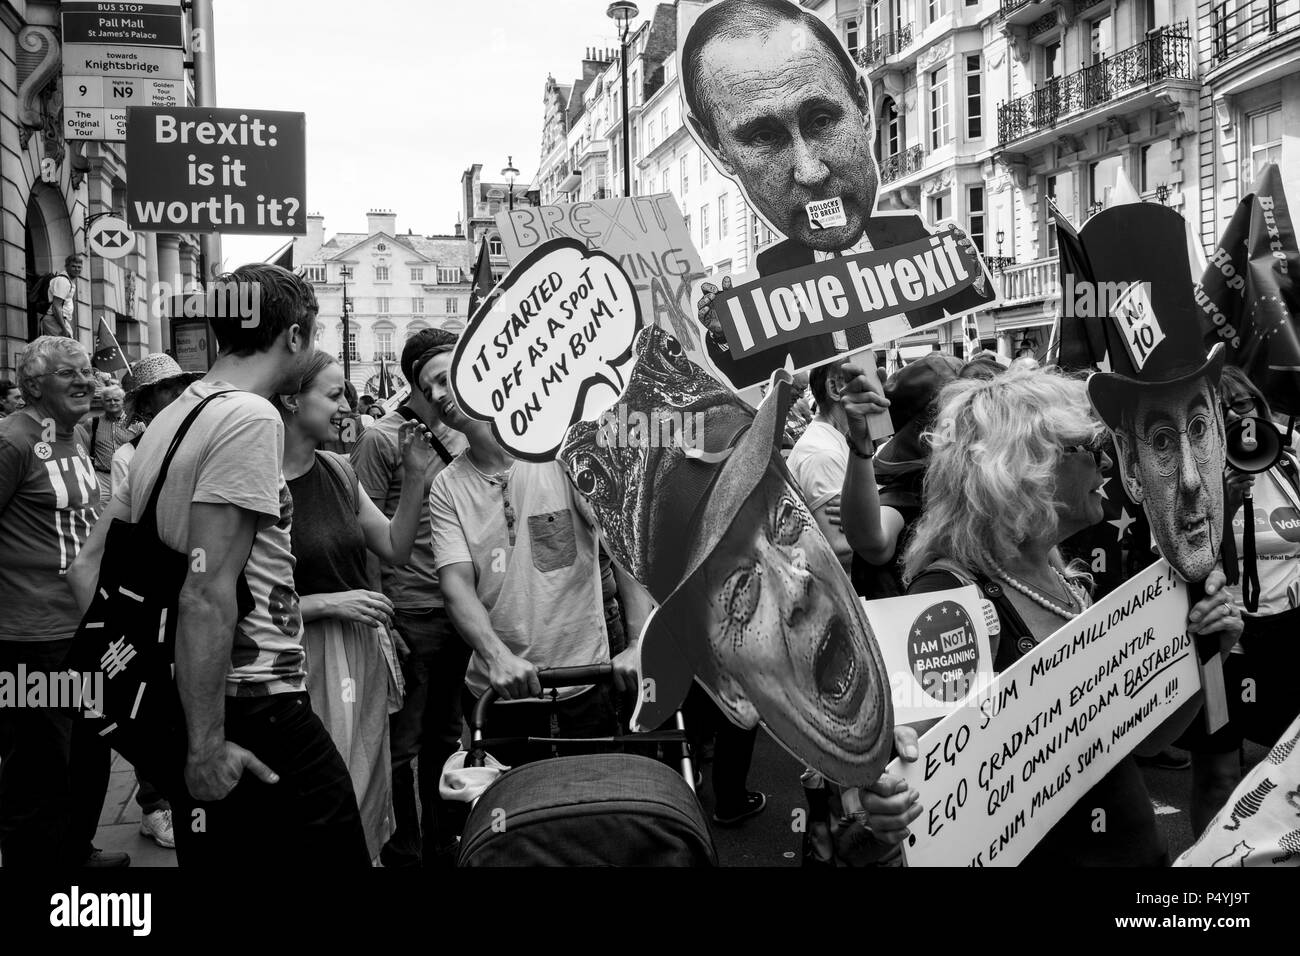 """London, UK. 23rd June 2018. More than 100,000 people have marched through central London to demand a final vote on any UK exit deal, on the second anniversary of the Brexit vote. Anti-Brexit marchers travelled from across the country to join the rally, organised by a number of Westminster-based and grassroots lobbying groups and marks the launch of a nationwide petition for a """"People's Vote"""". London, UK. 23 June 2018 - Stock Image"""